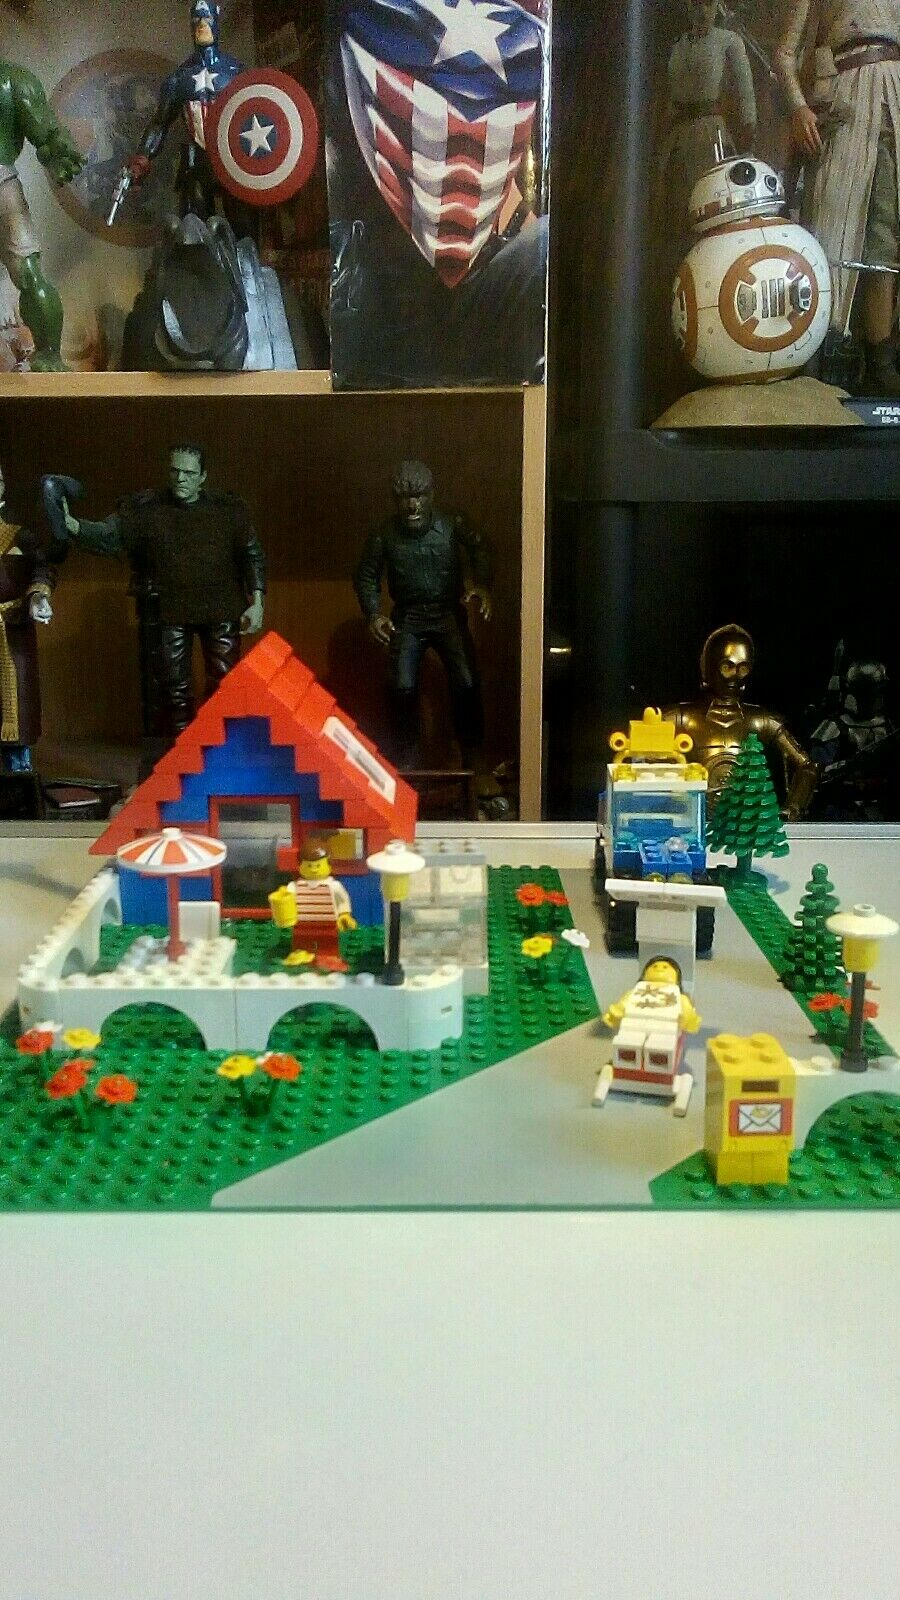 Lego Town Holiday Home, 100% Complete, Original Instructions, Vintage, No Box